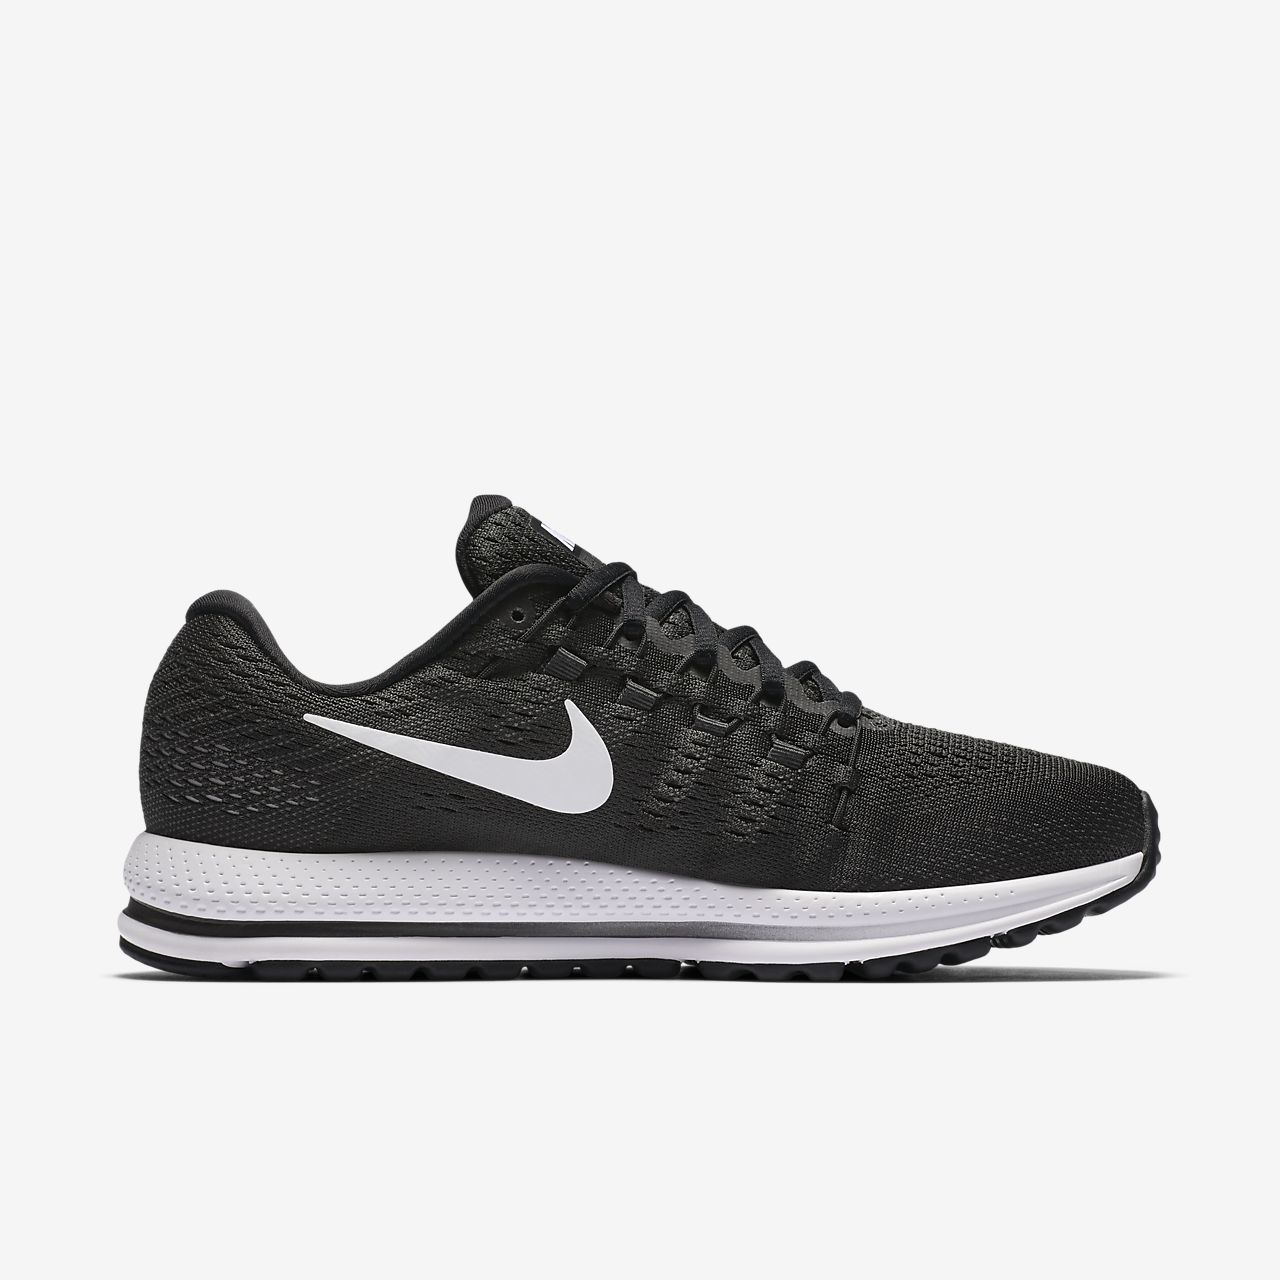 Nike Air Zoom Vomero 12 Mens Running Shoe